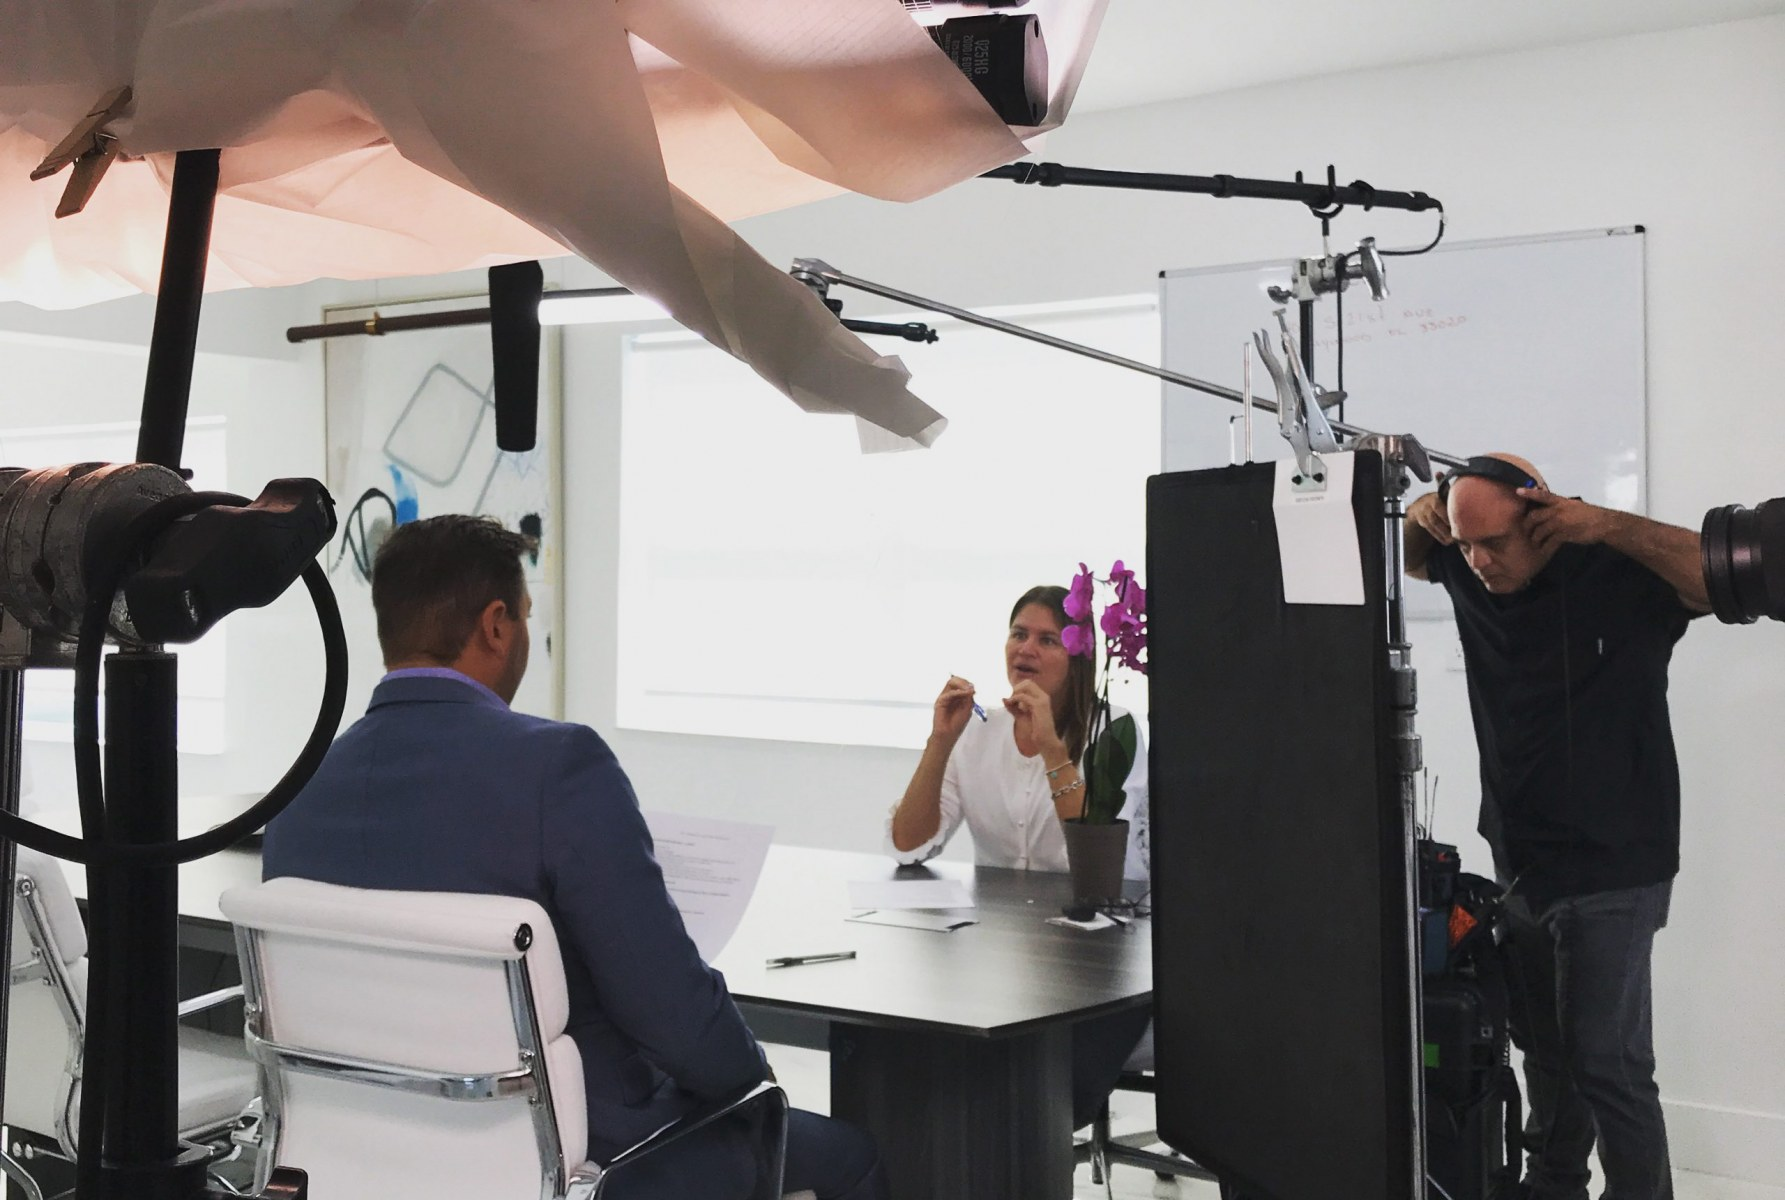 Production Company in South Florida